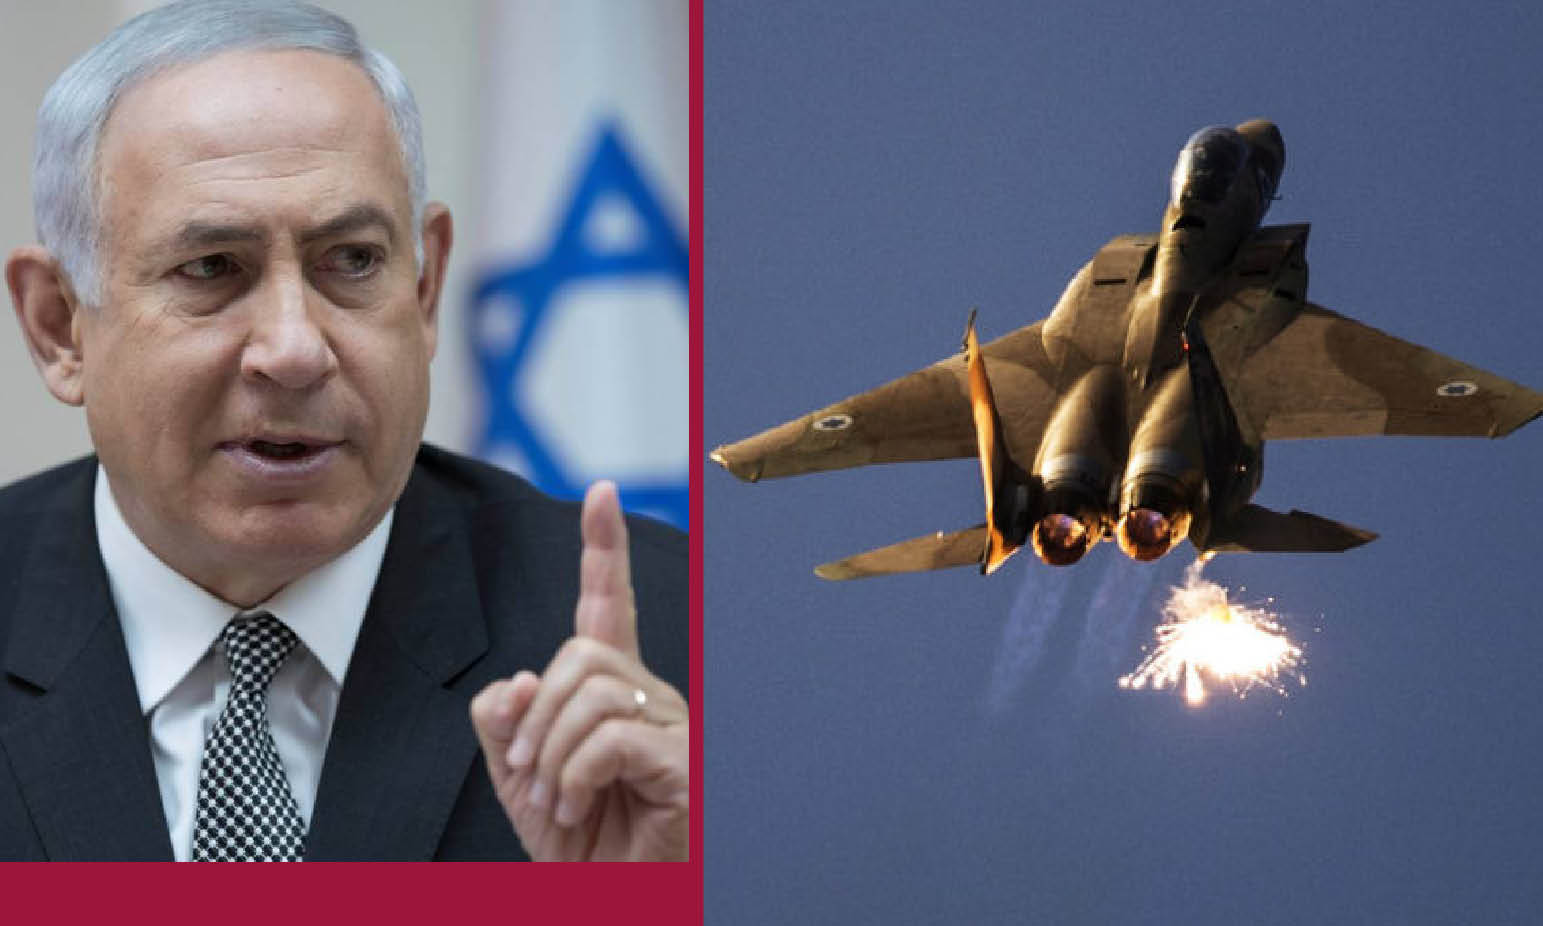 THE ZIONIST GANGSTER NETANYAHU ATTACKS SYRIA FOR TRIGGING HELL